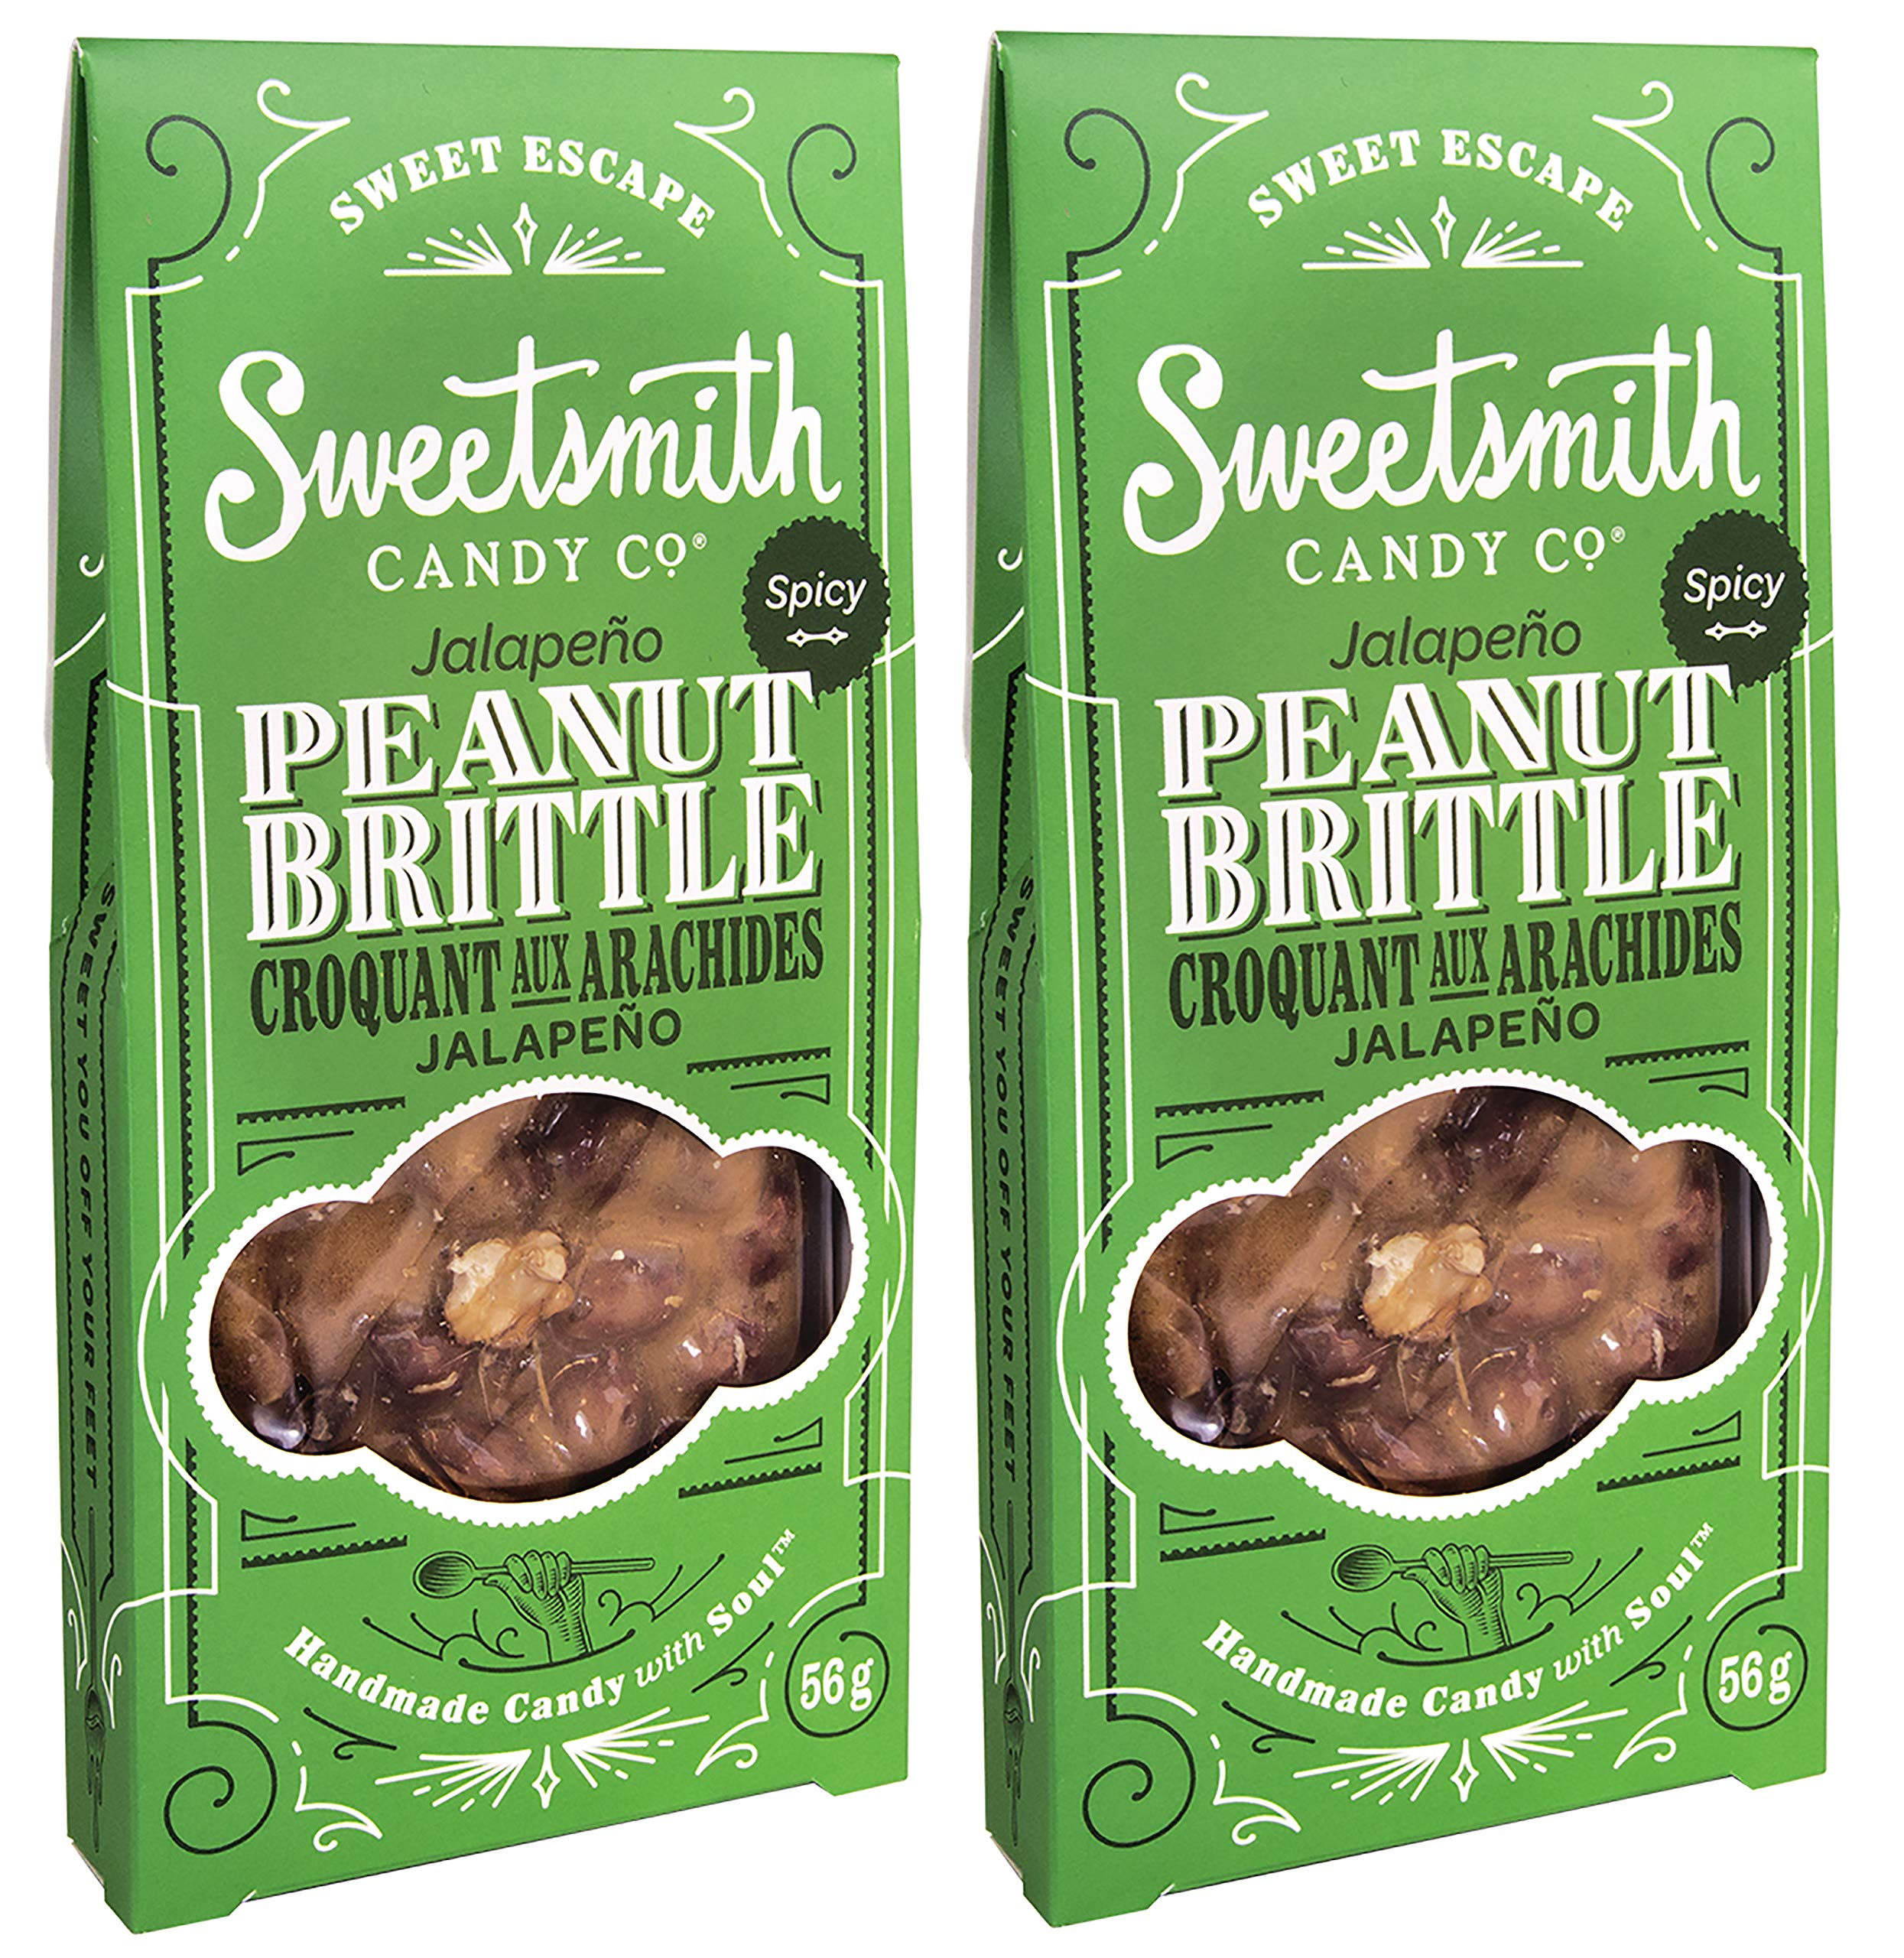 Sweetsmith Candy Co. Jalapeno Peanut Brittle - Handmade, Gluten-Free, Egg-Free, Soy-Free, Vegan and Dairy-Free (Jalapeno, 2 Pack) by Sweetsmith Candy Co.